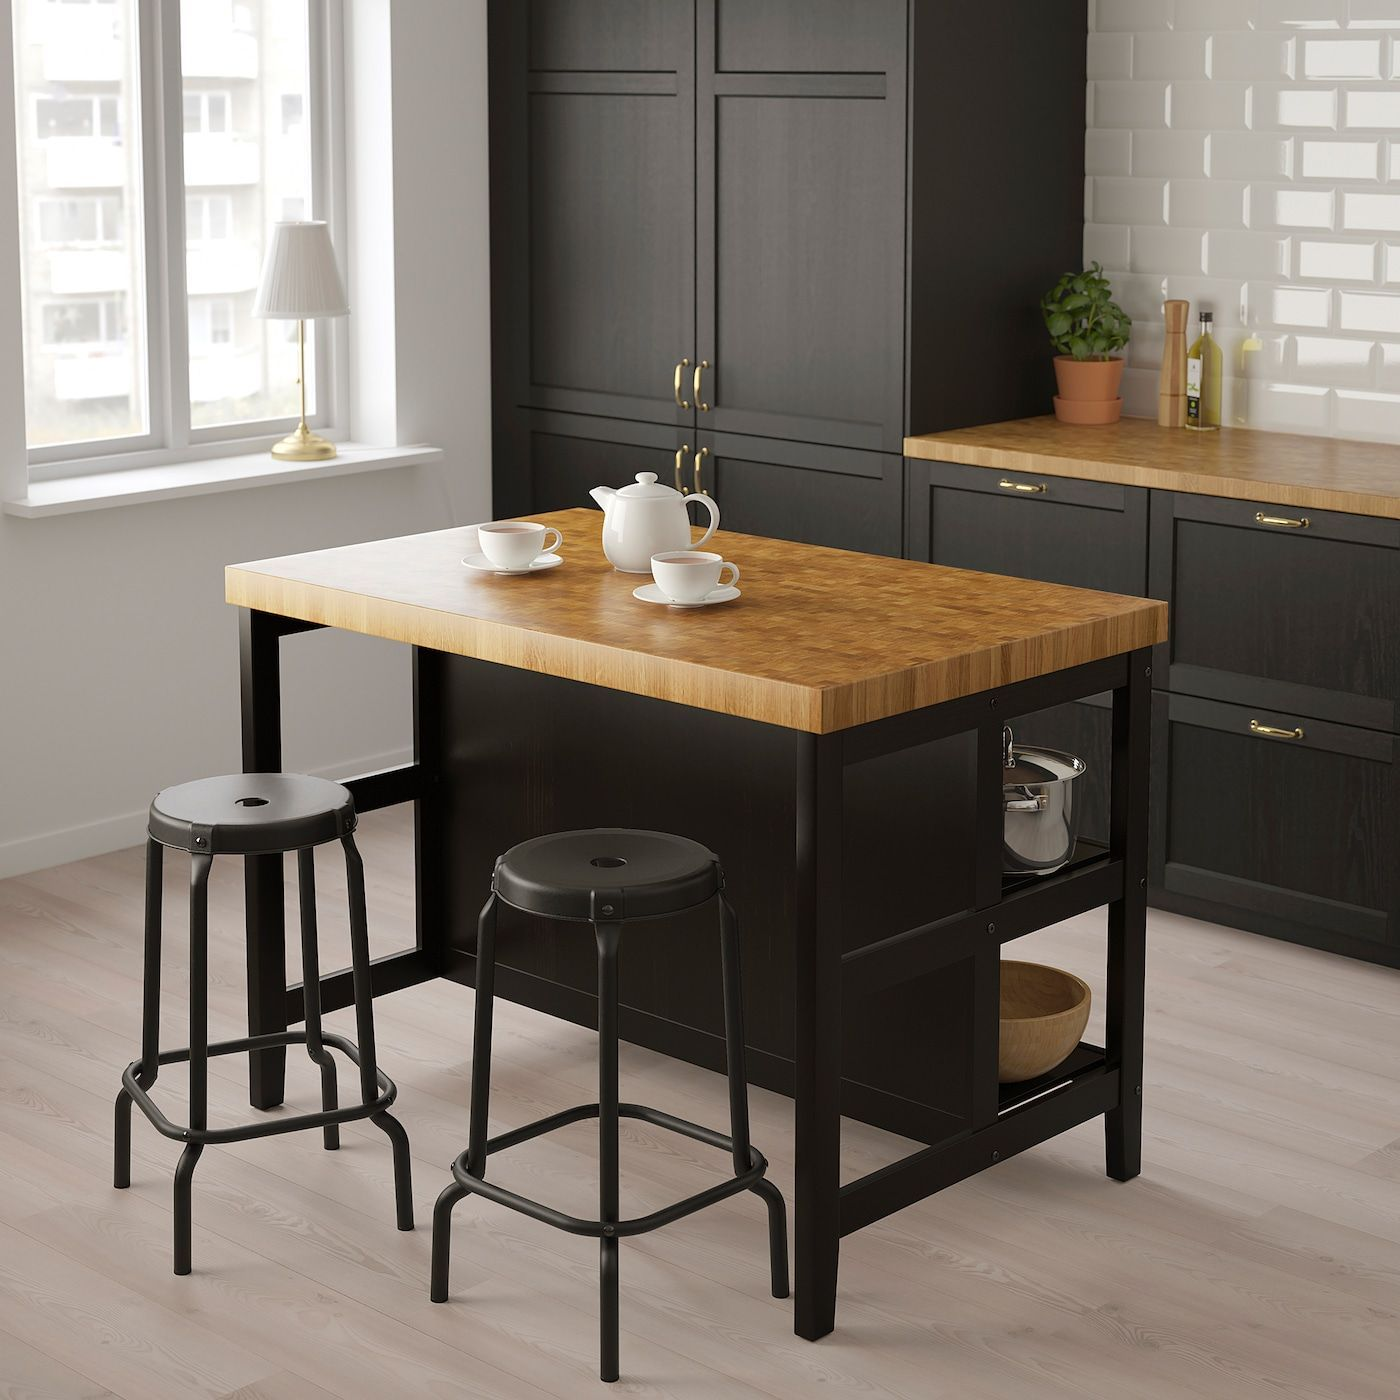 Vadholma Kucheninsel Schwarz Eiche Avenement By Ca Ki Eiche Kucheninsel Schwarz Vadholma In 2020 Freestanding Kitchen Island Ikea Kitchen Island Kitchen Style